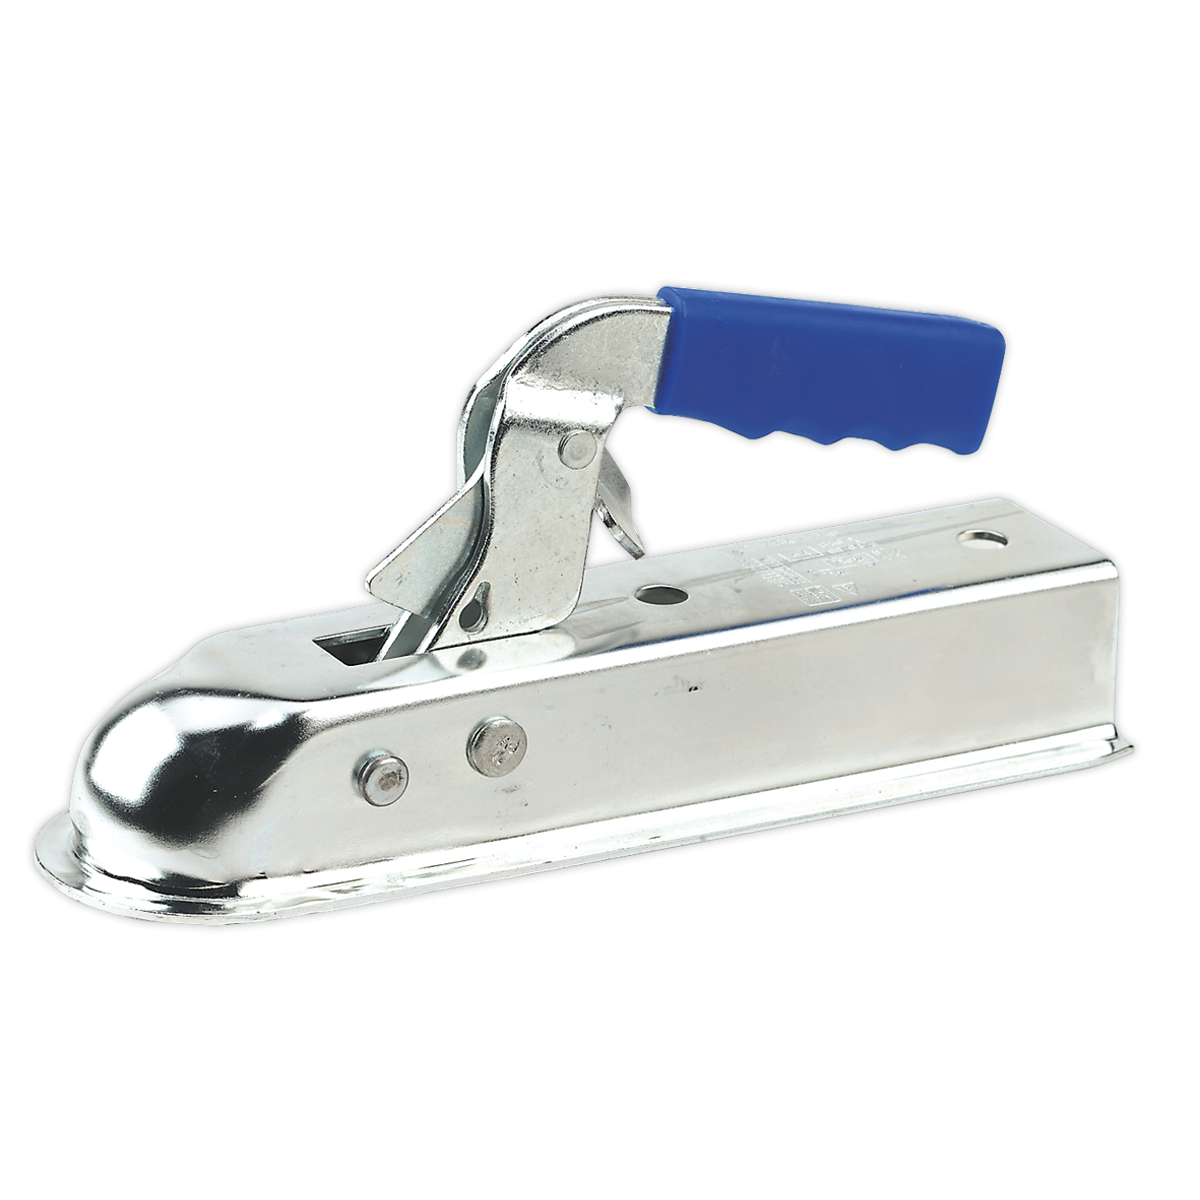 Towing Accessories TB38 Sealey Tow Ball Lock 50mm